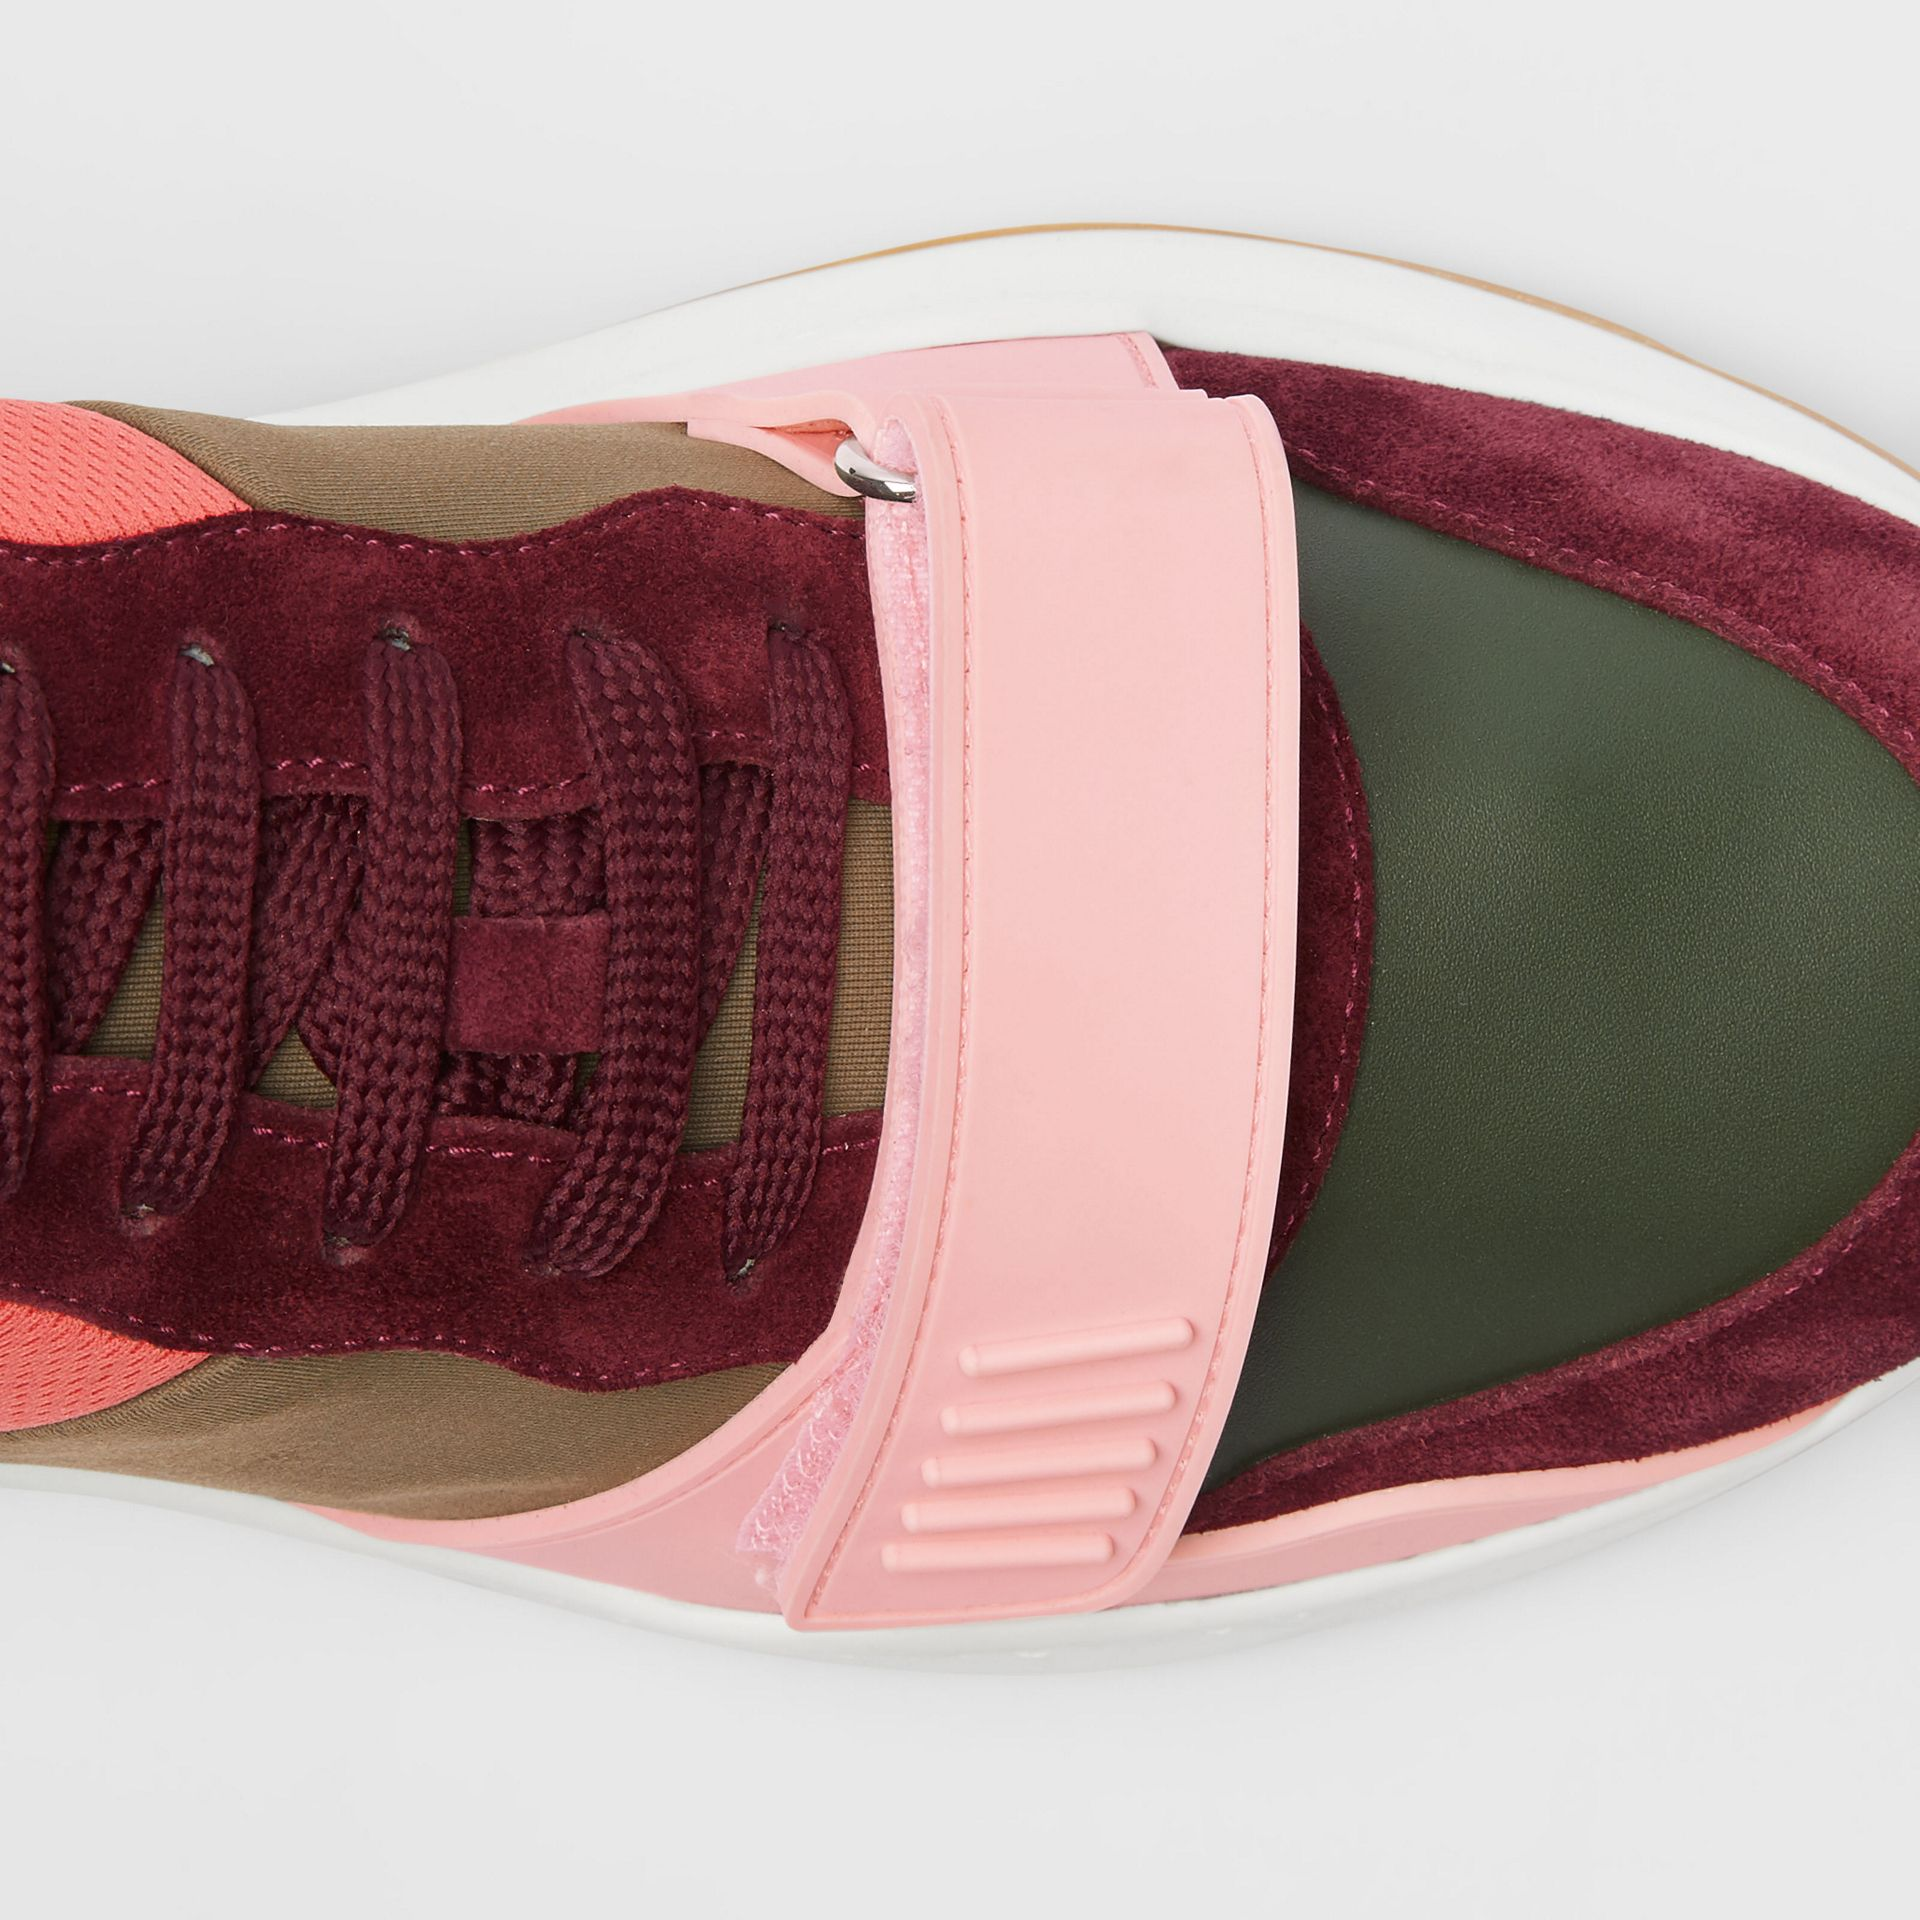 Colour Block Suede and Neoprene Sneakers in Bordeaux/khaki - Men | Burberry United Kingdom - gallery image 1